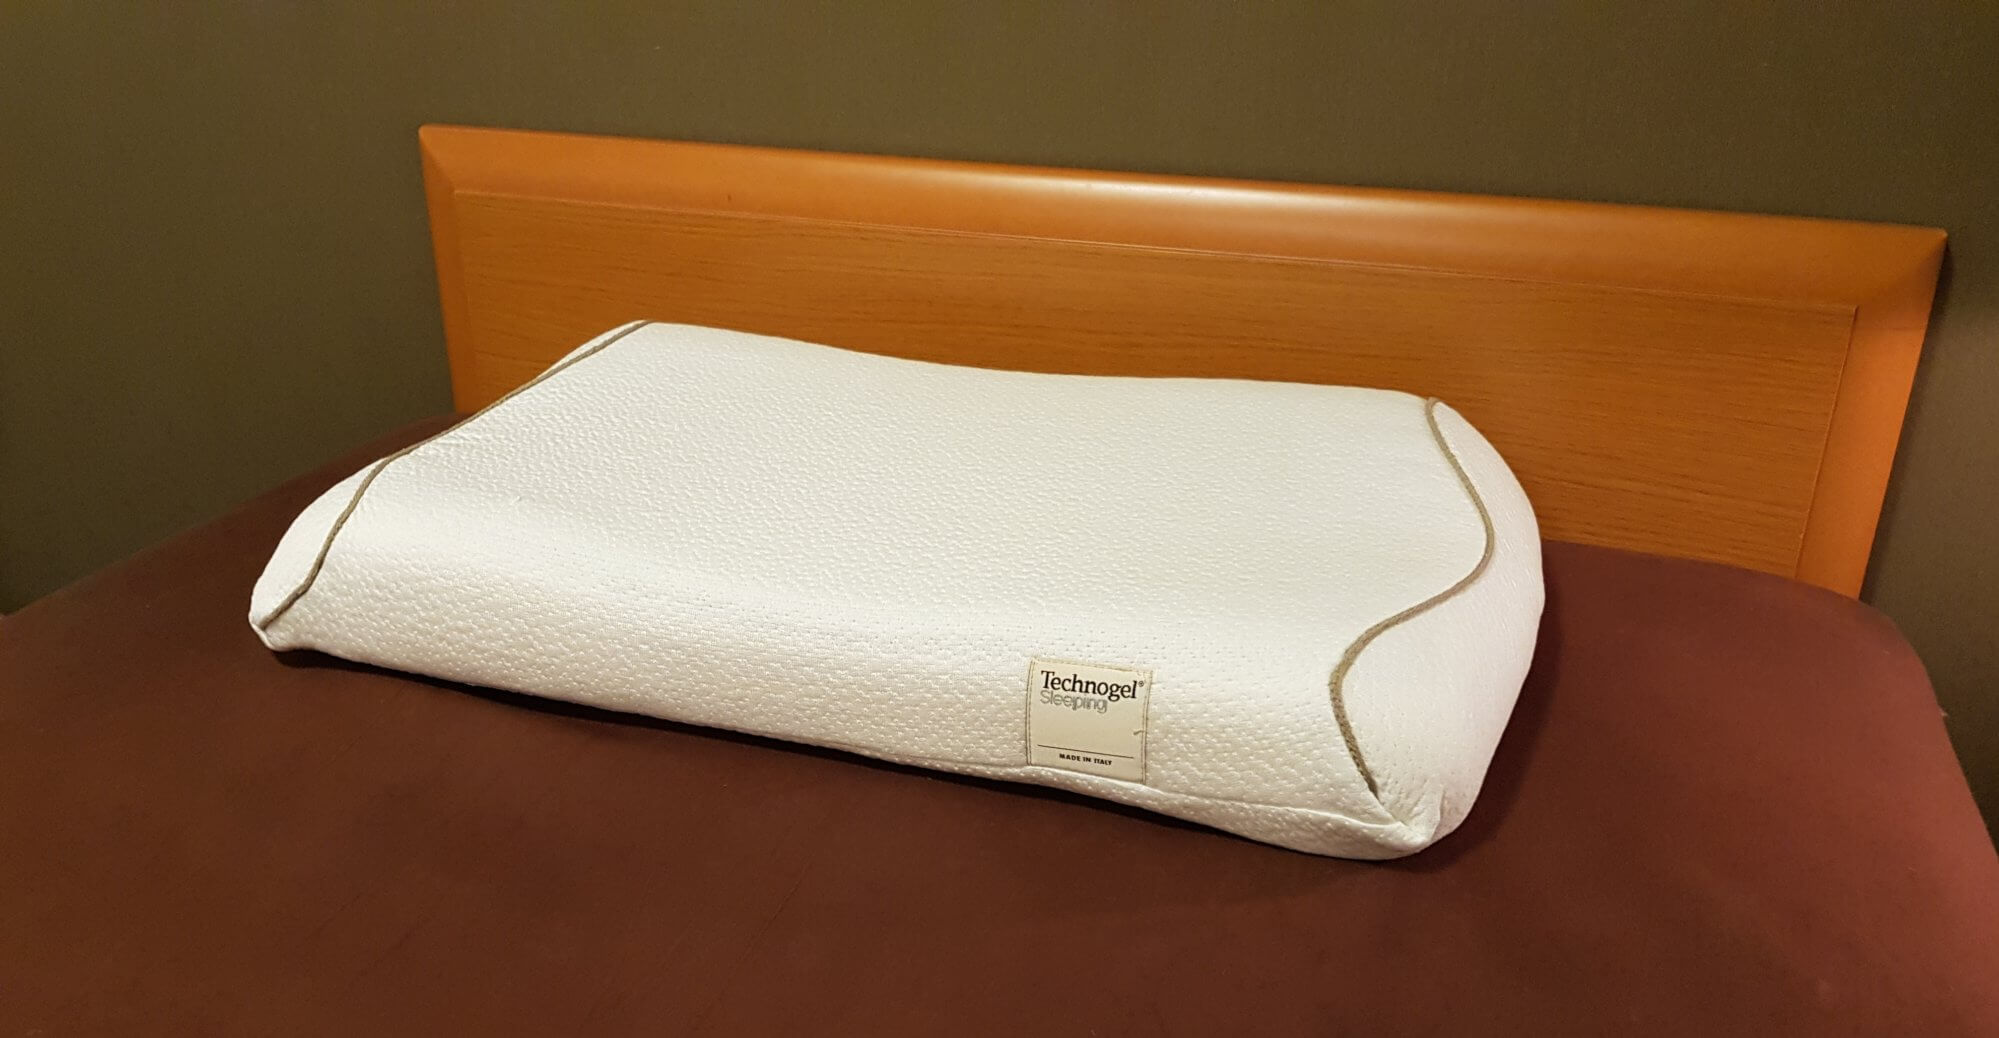 technogel-pillow-on-my-bed